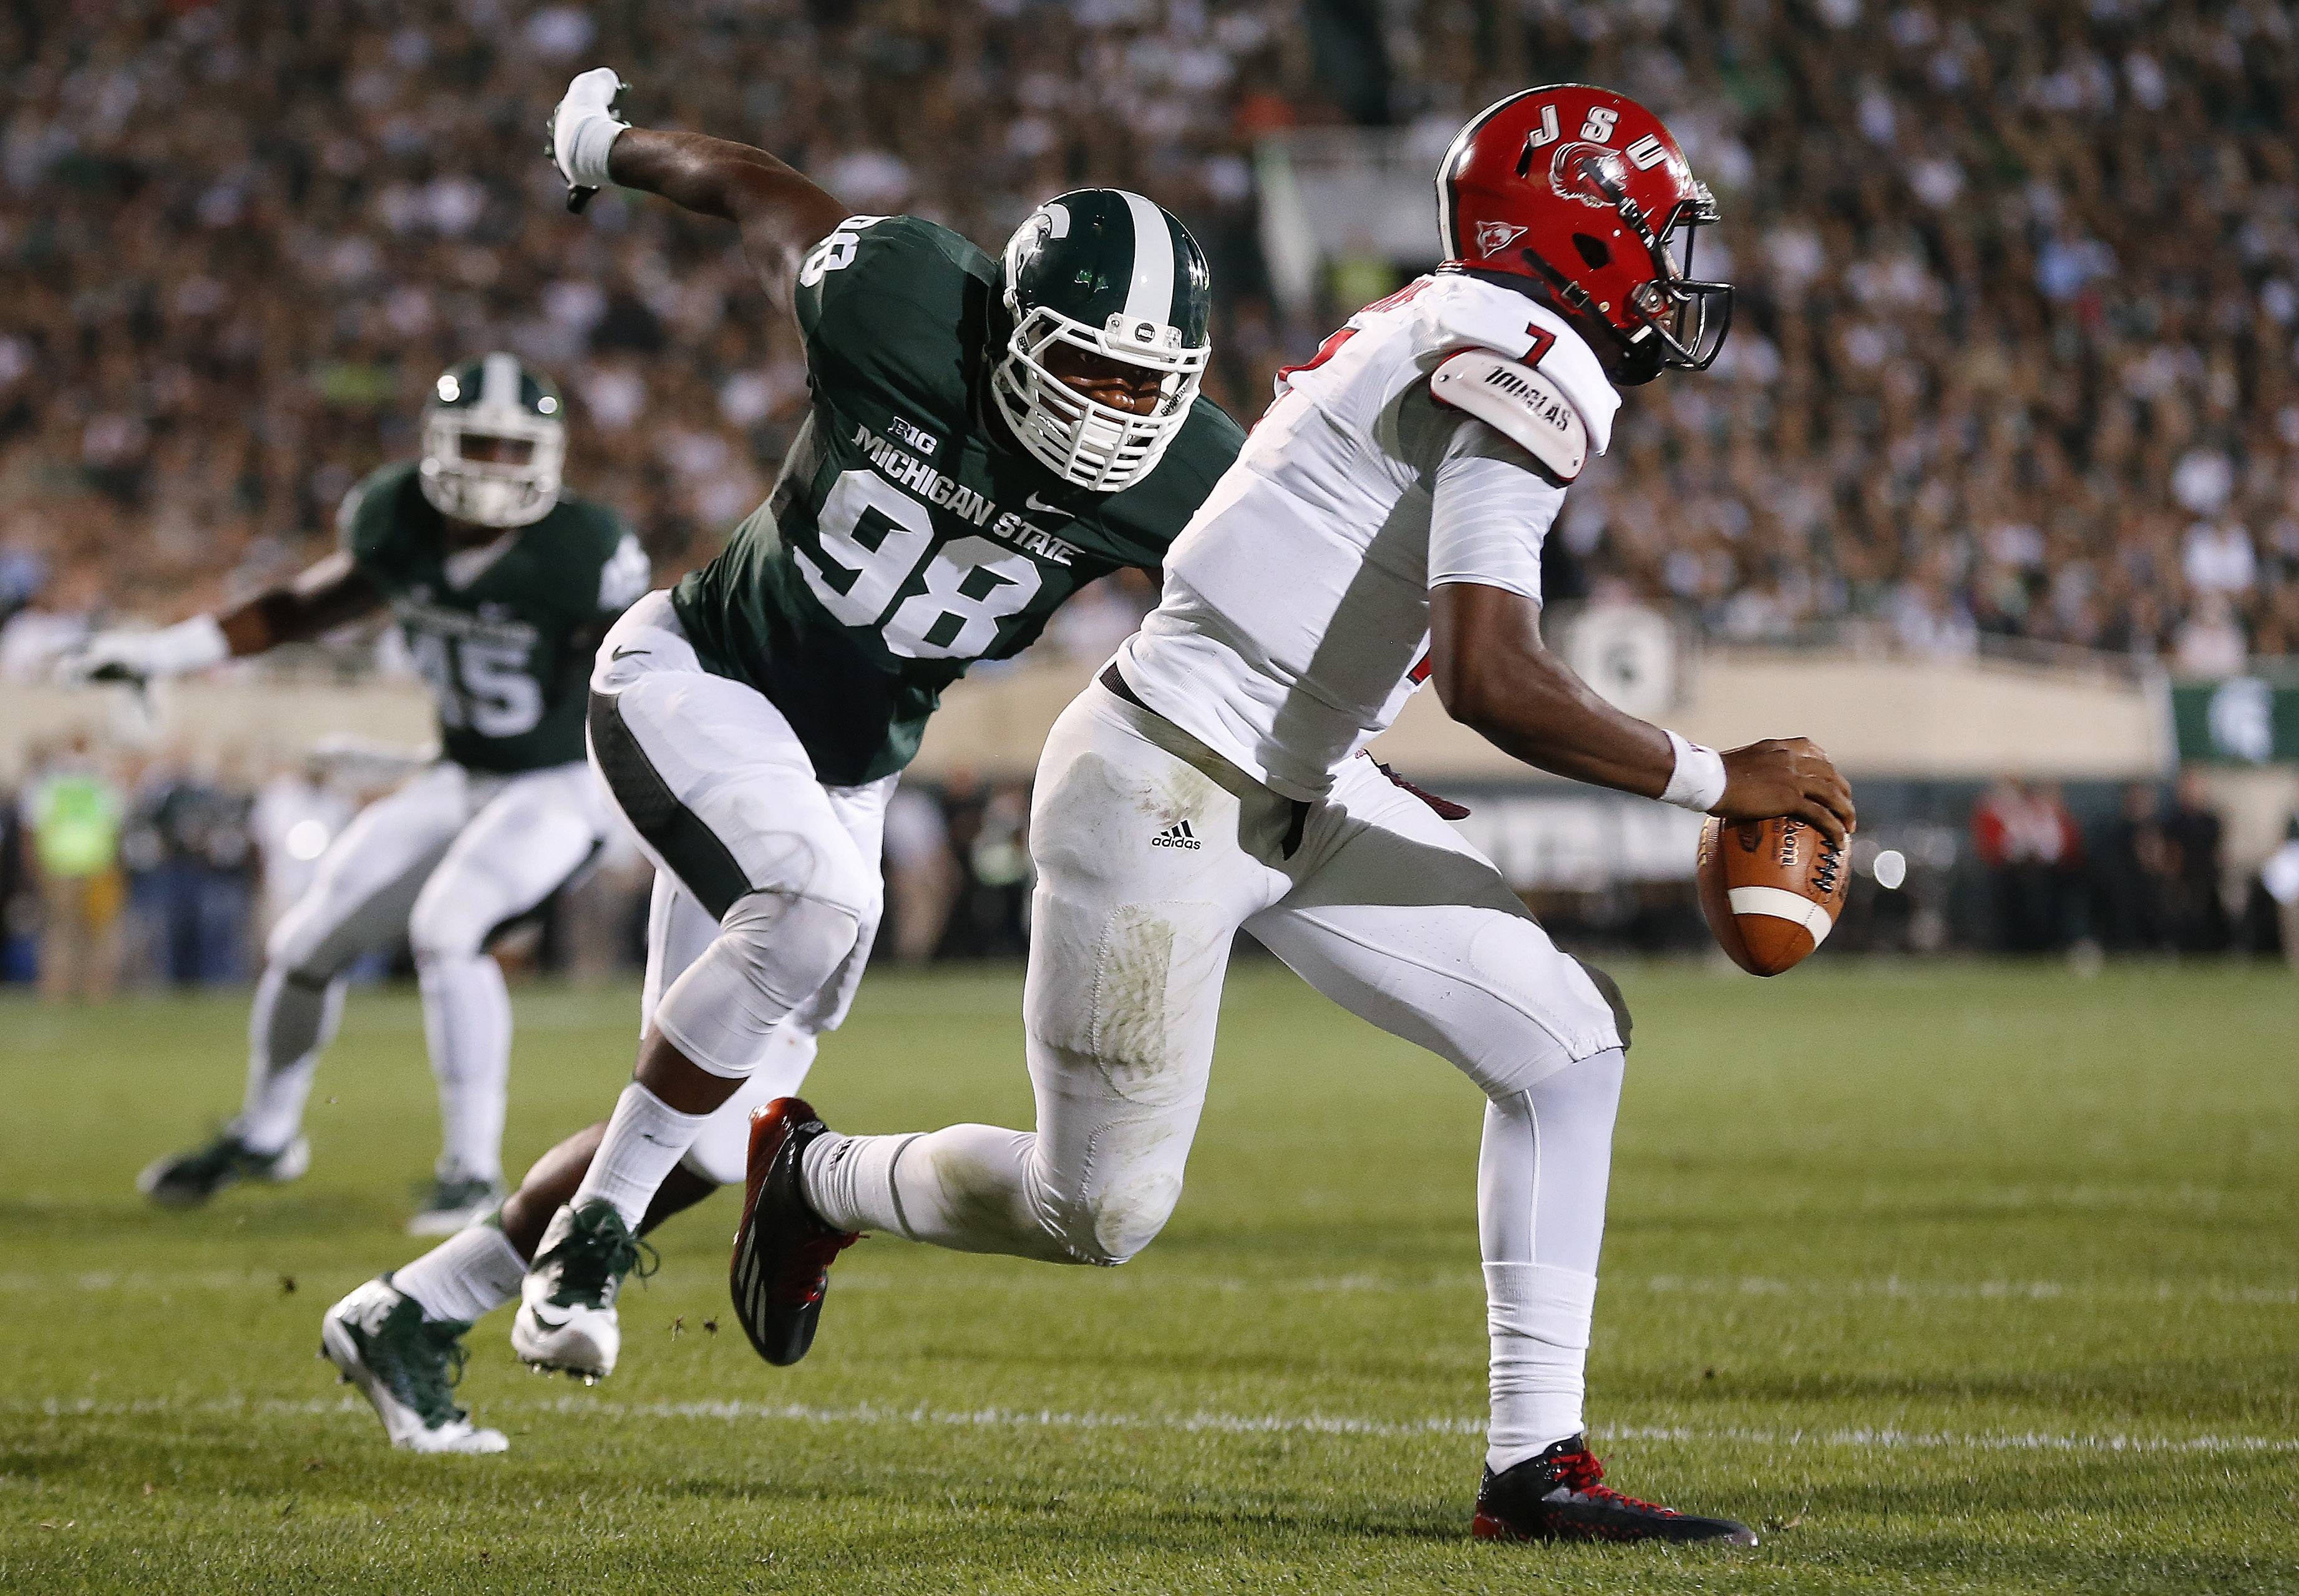 Michigan State defensive end Demetrius Cooper chases Jacksonville State quarterback Eli Jenkins Friday in East Lansing, Michigan. Michigan State visits Oregon Saturday in the first matchup of top 10 teams this season.